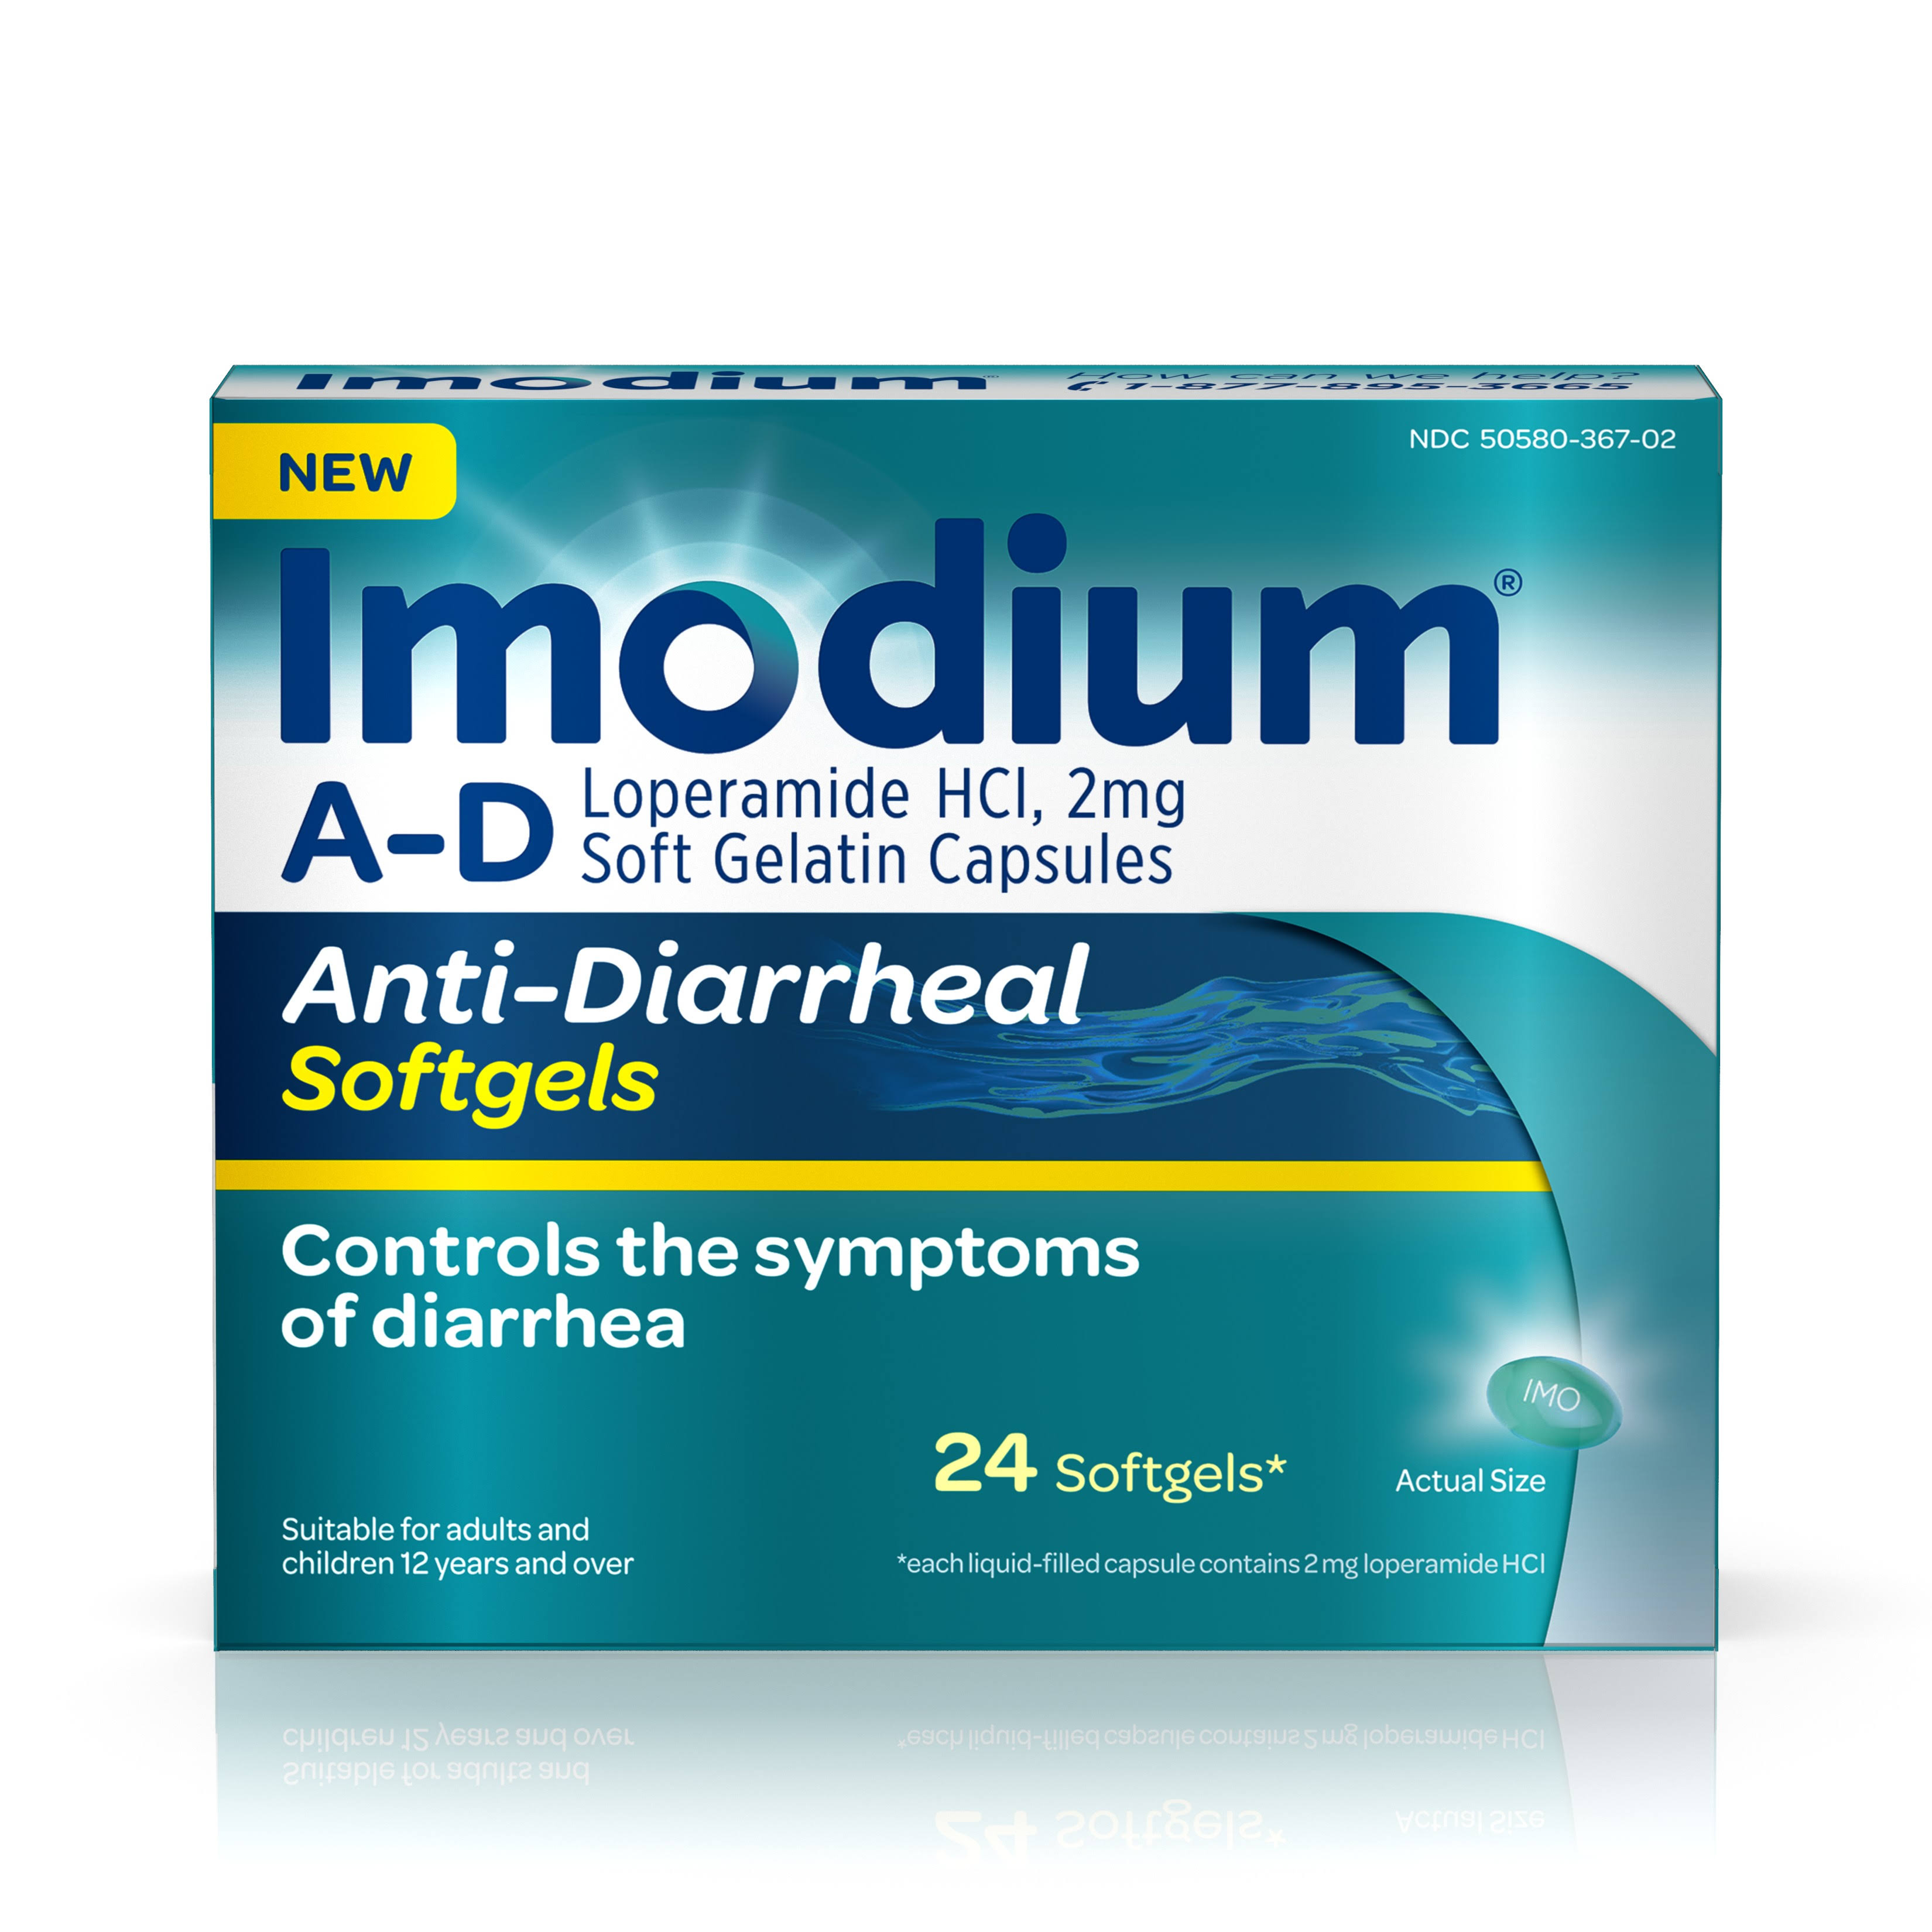 Imodium A-D Anti-Diarrheal Softgels - 24 Softgels